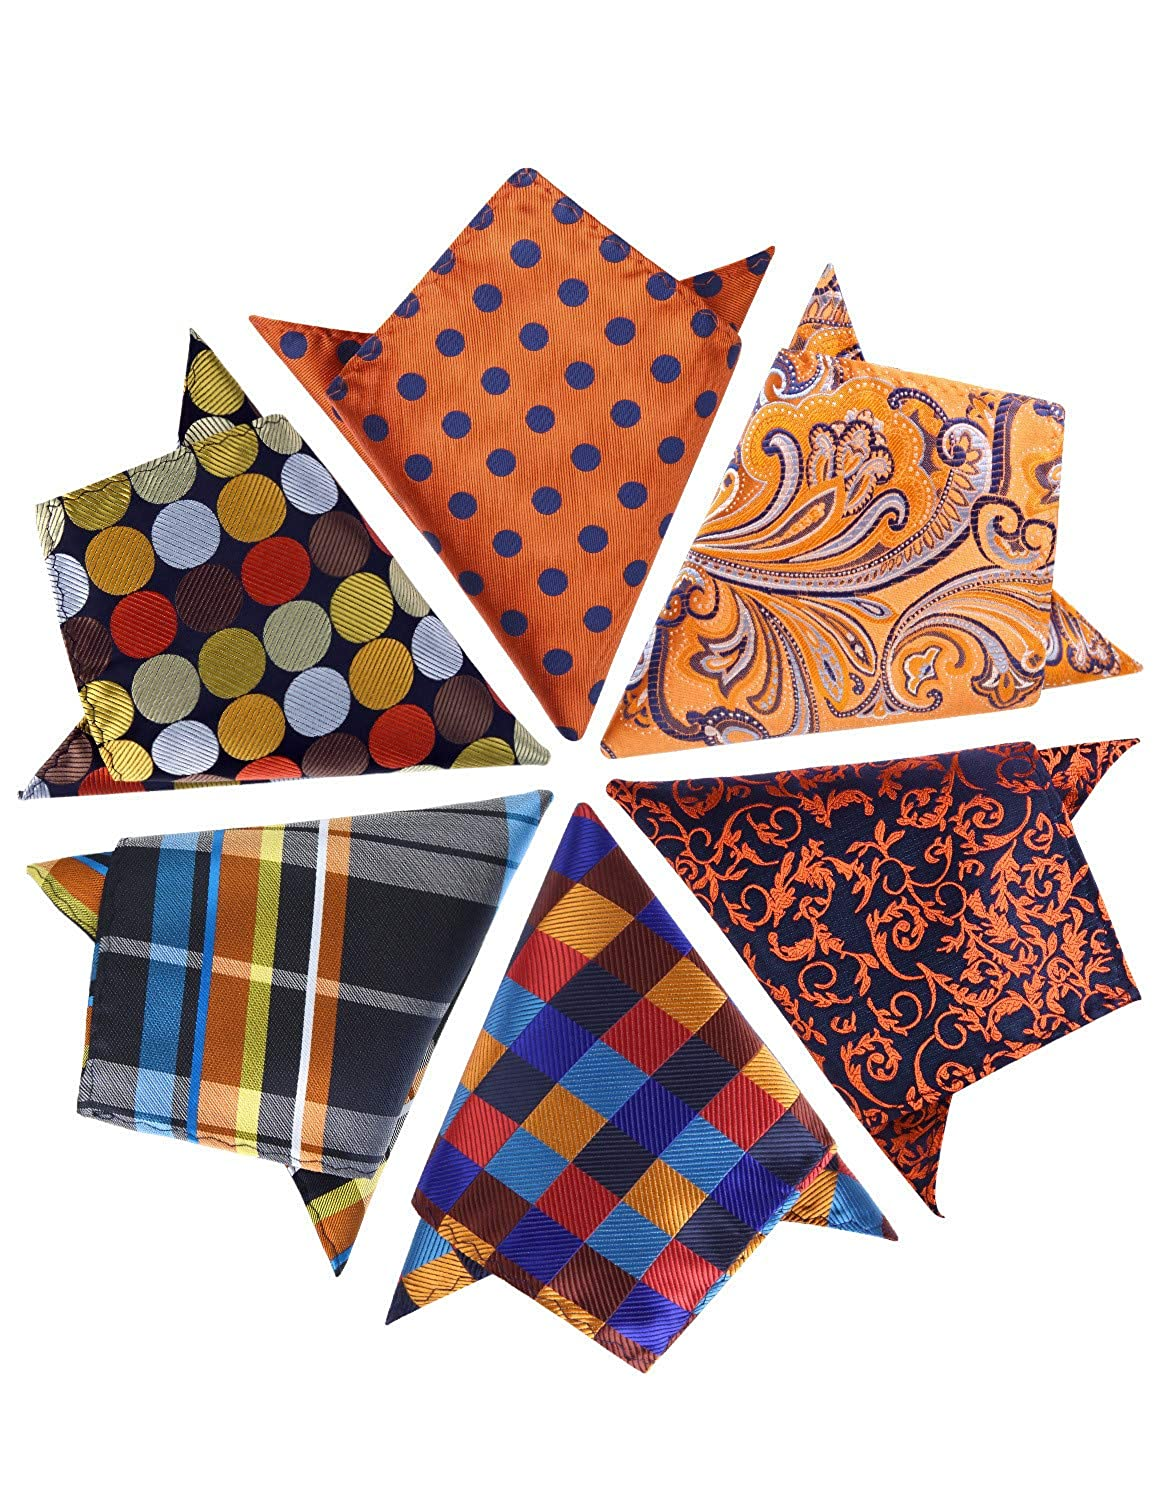 HISDERN 6 Piece Assorted Woven Mens Pocket Square Handkerchief Wedding Gift